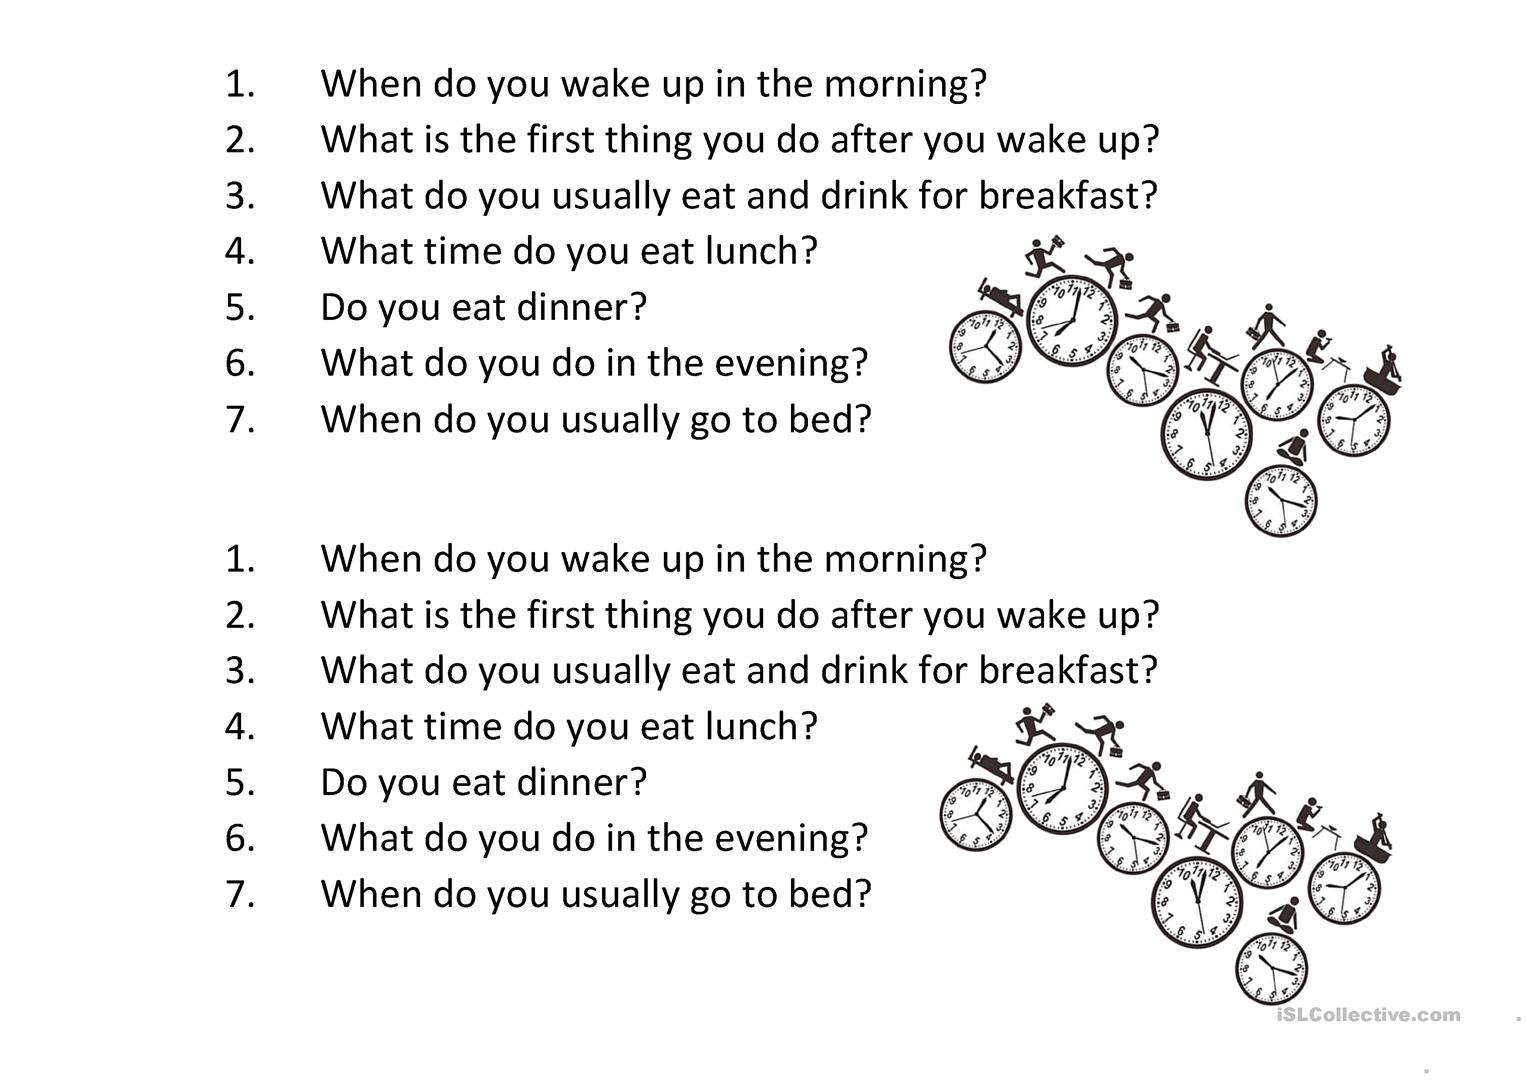 Daily Routine Questions Basic Worksheet